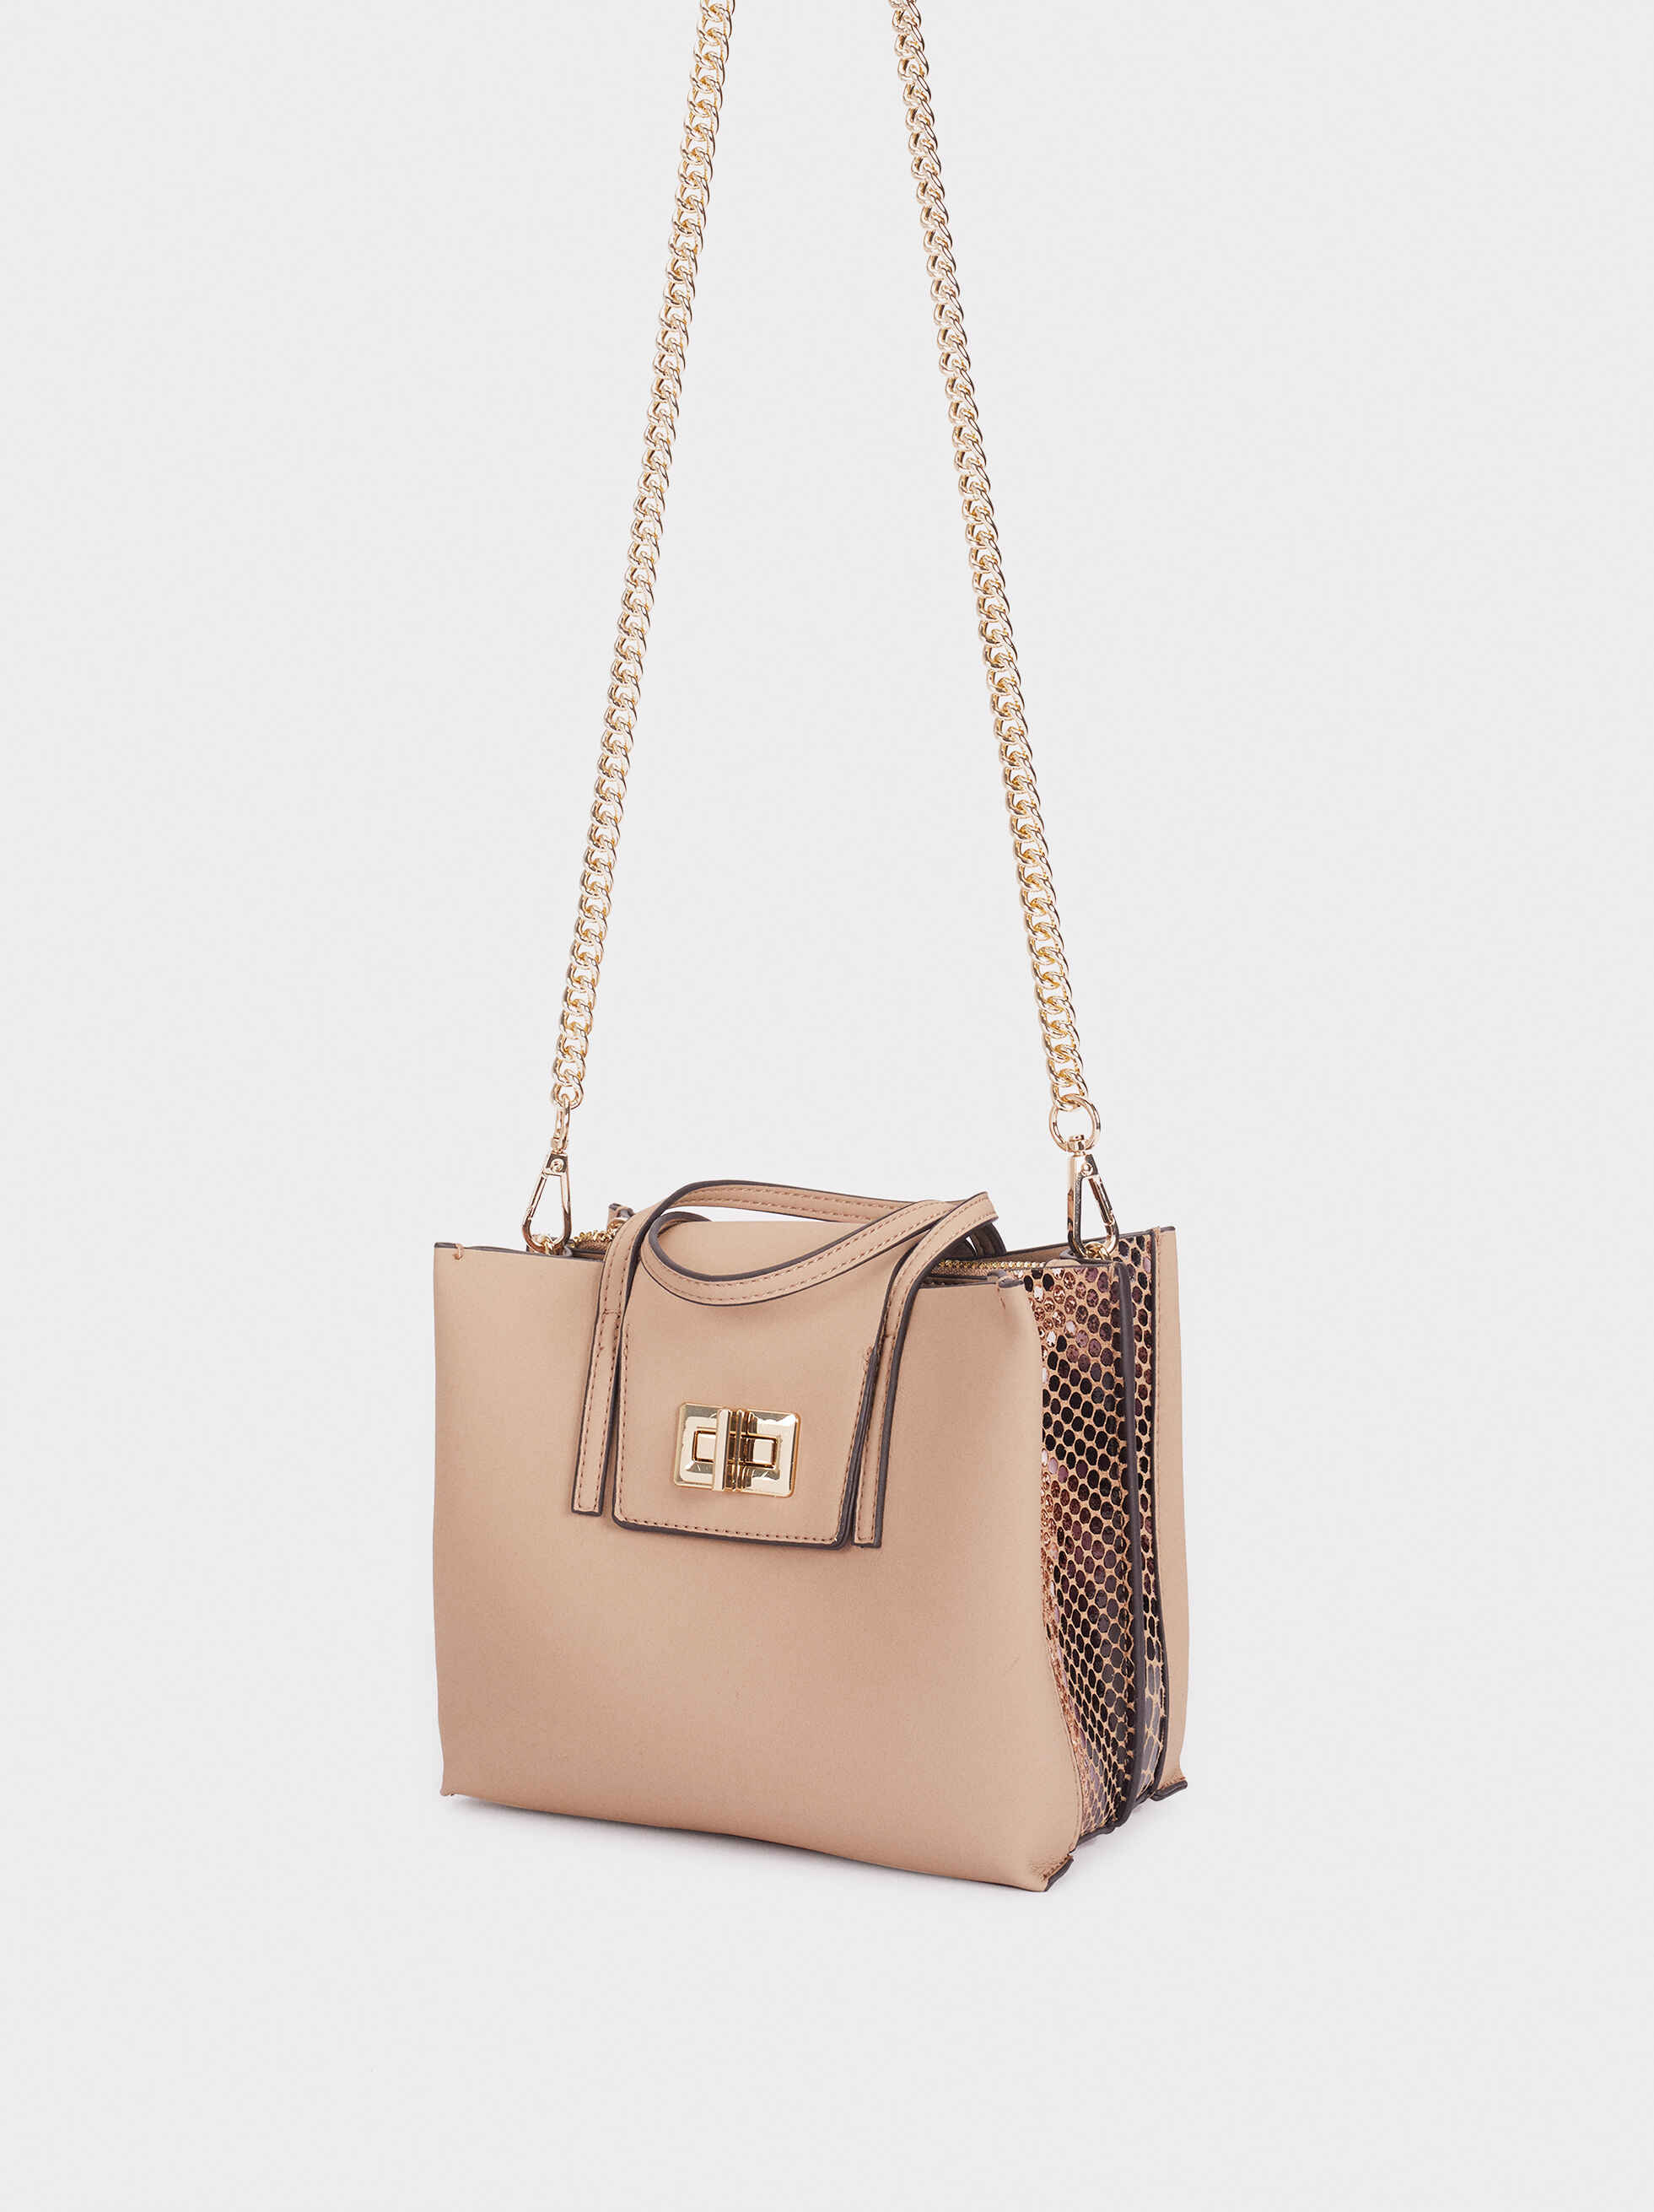 Tote Bag With Embossed Snakeskin Detailing, Beige, hi-res